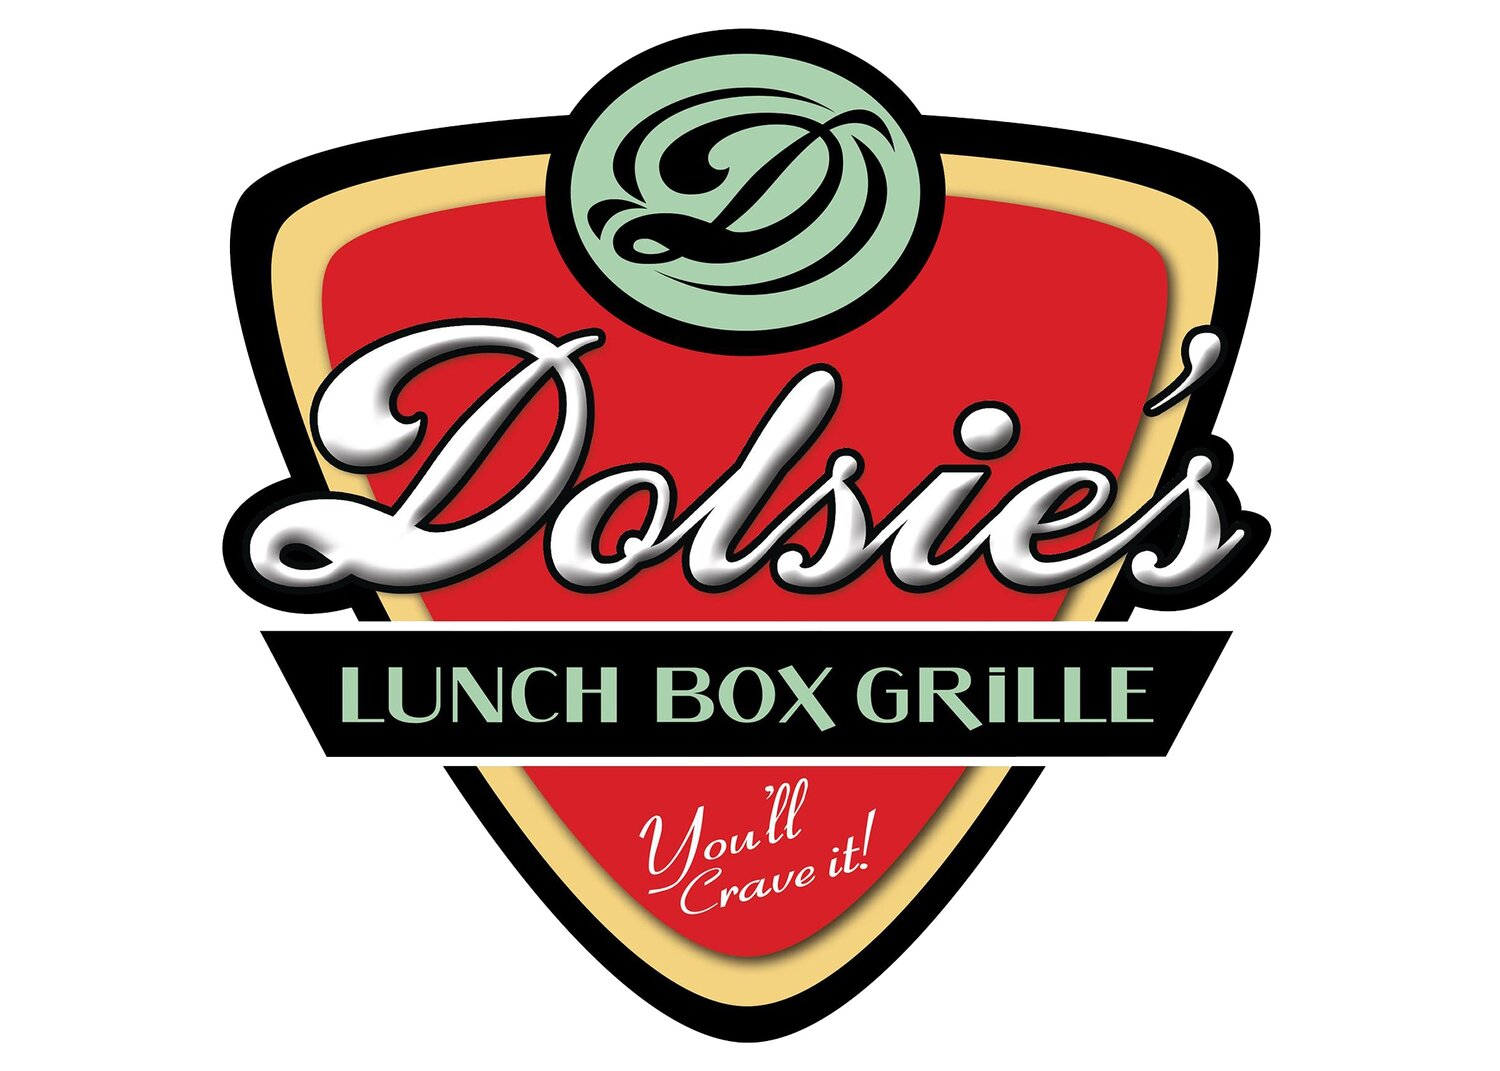 Dolsies Lunch Box Grille